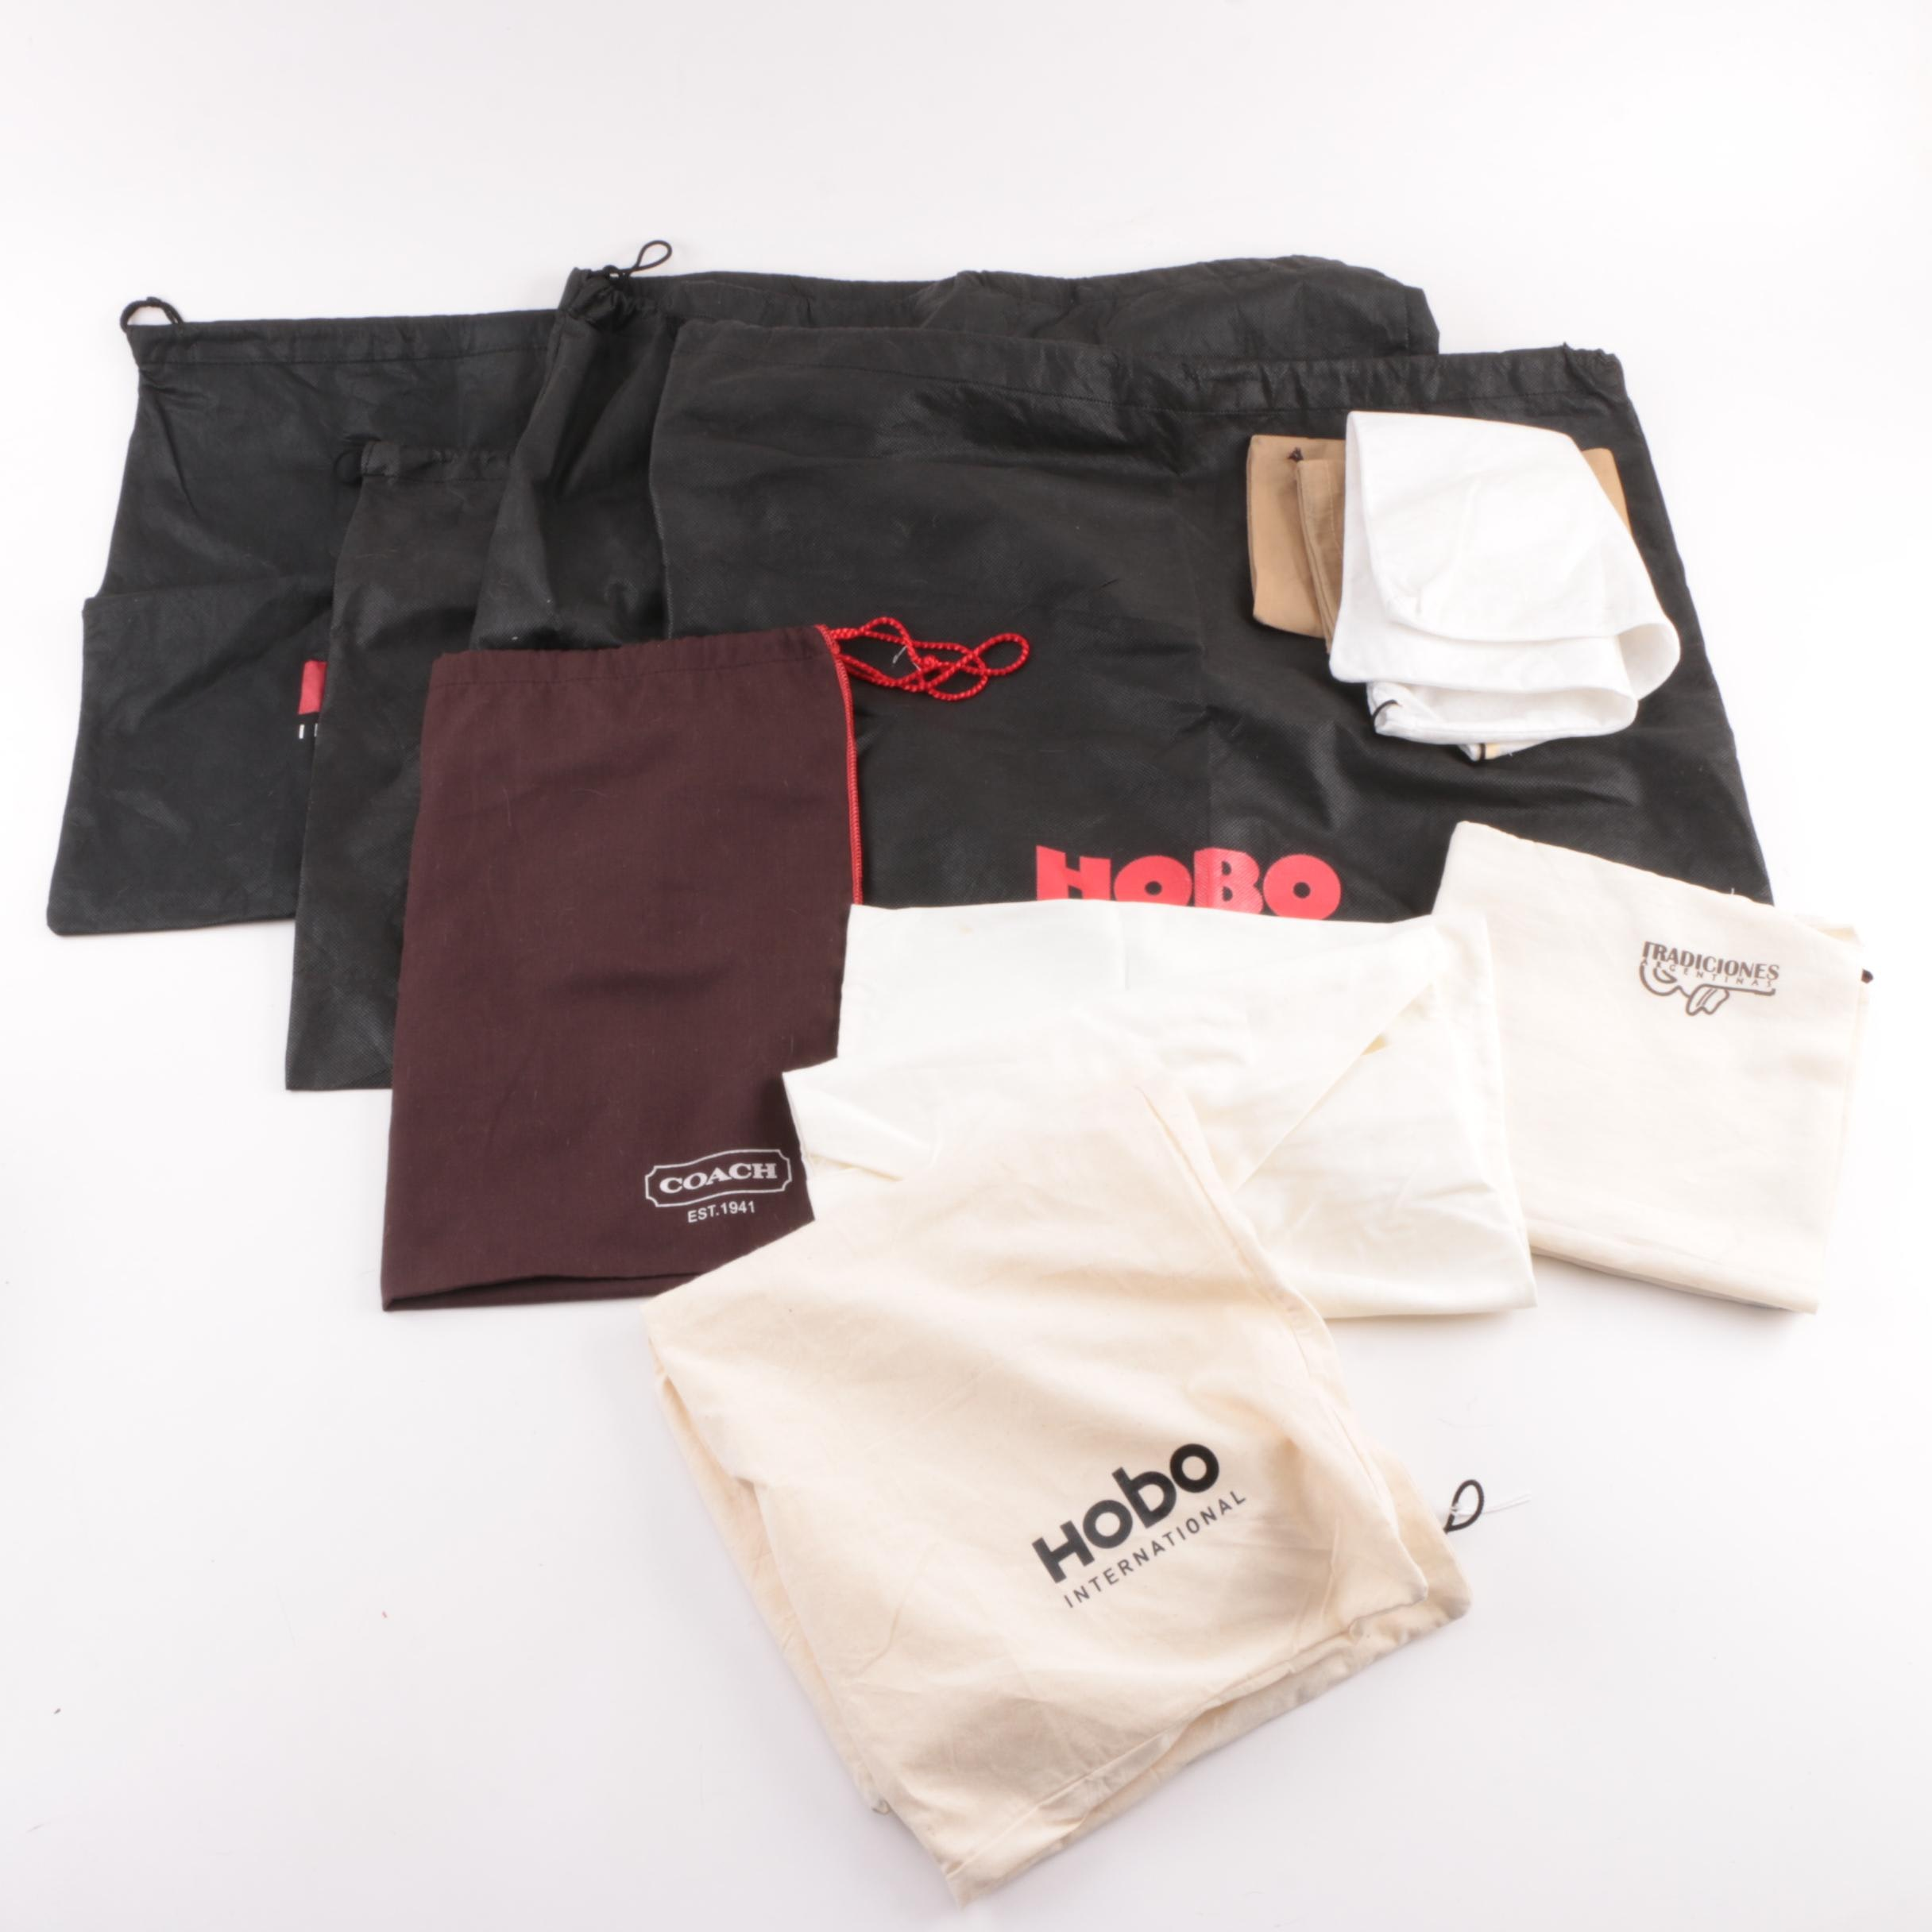 Designer Drawstring Dust Covers Including Hobo International and Coach